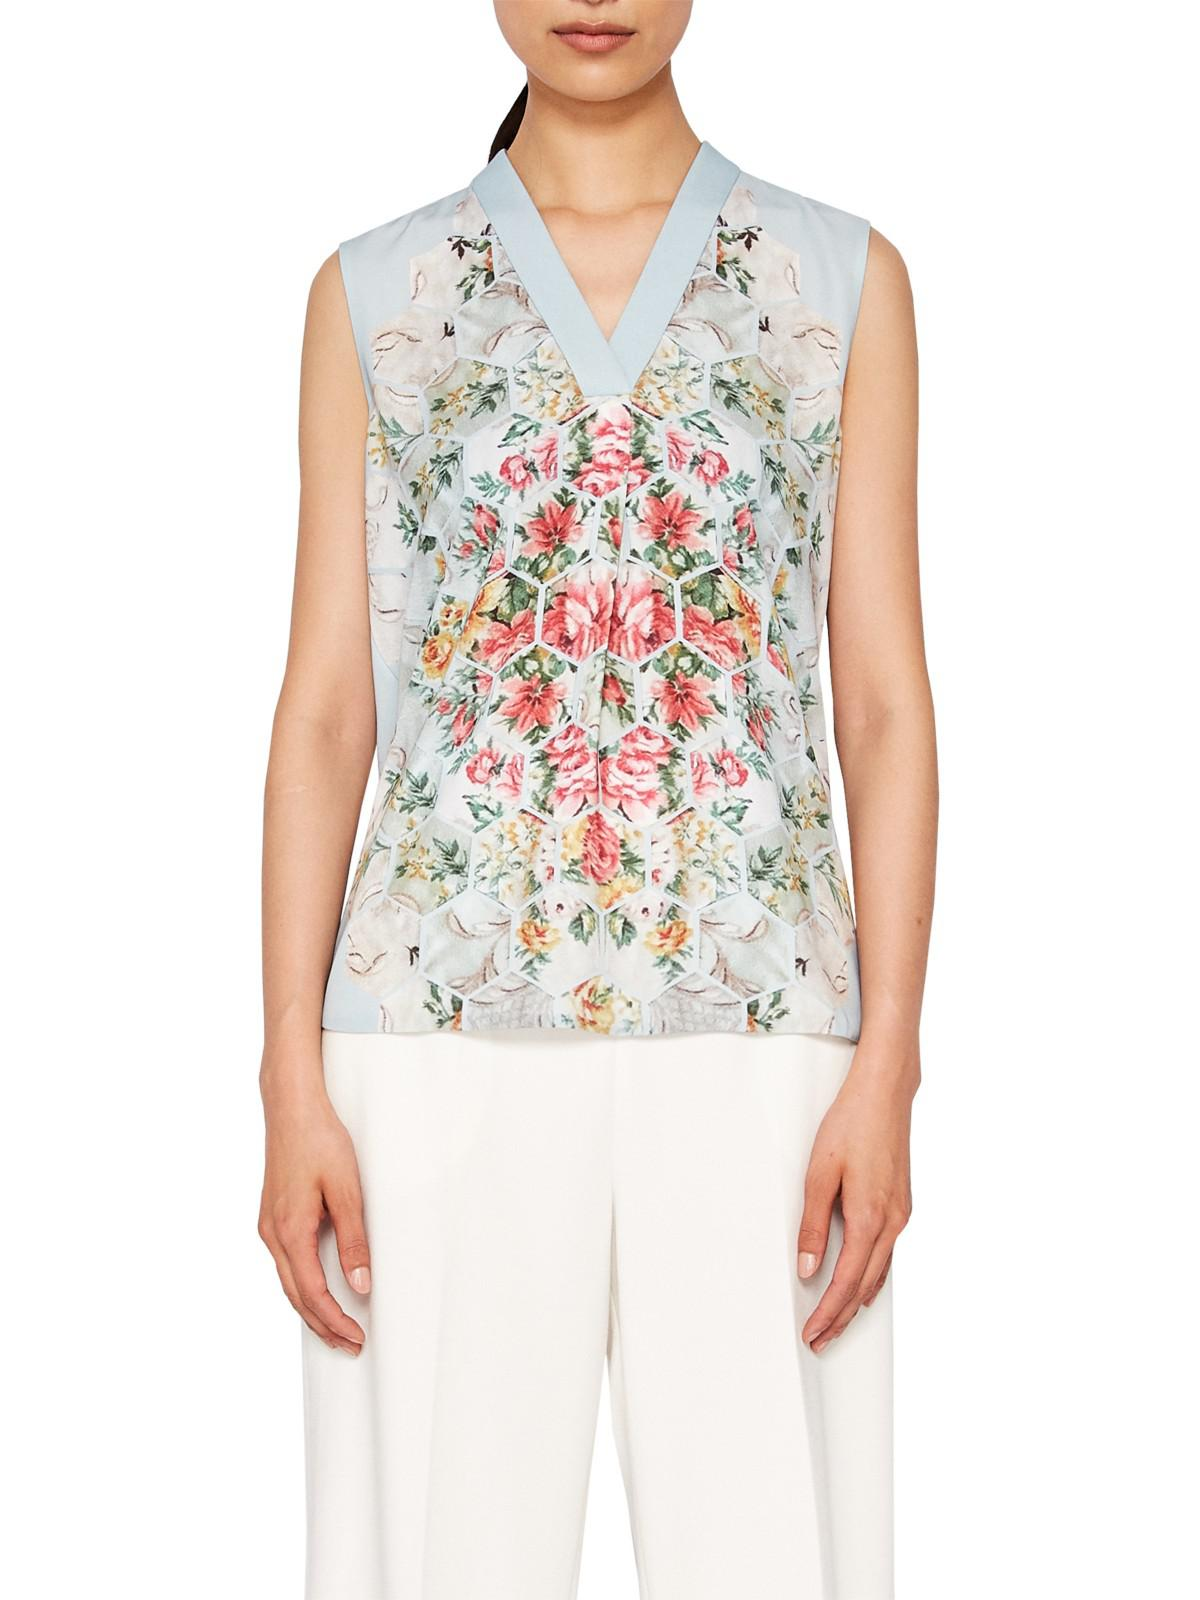 6340d36e4f9d10 Ted Baker Kisey Patchwork Top in Blue - Lyst